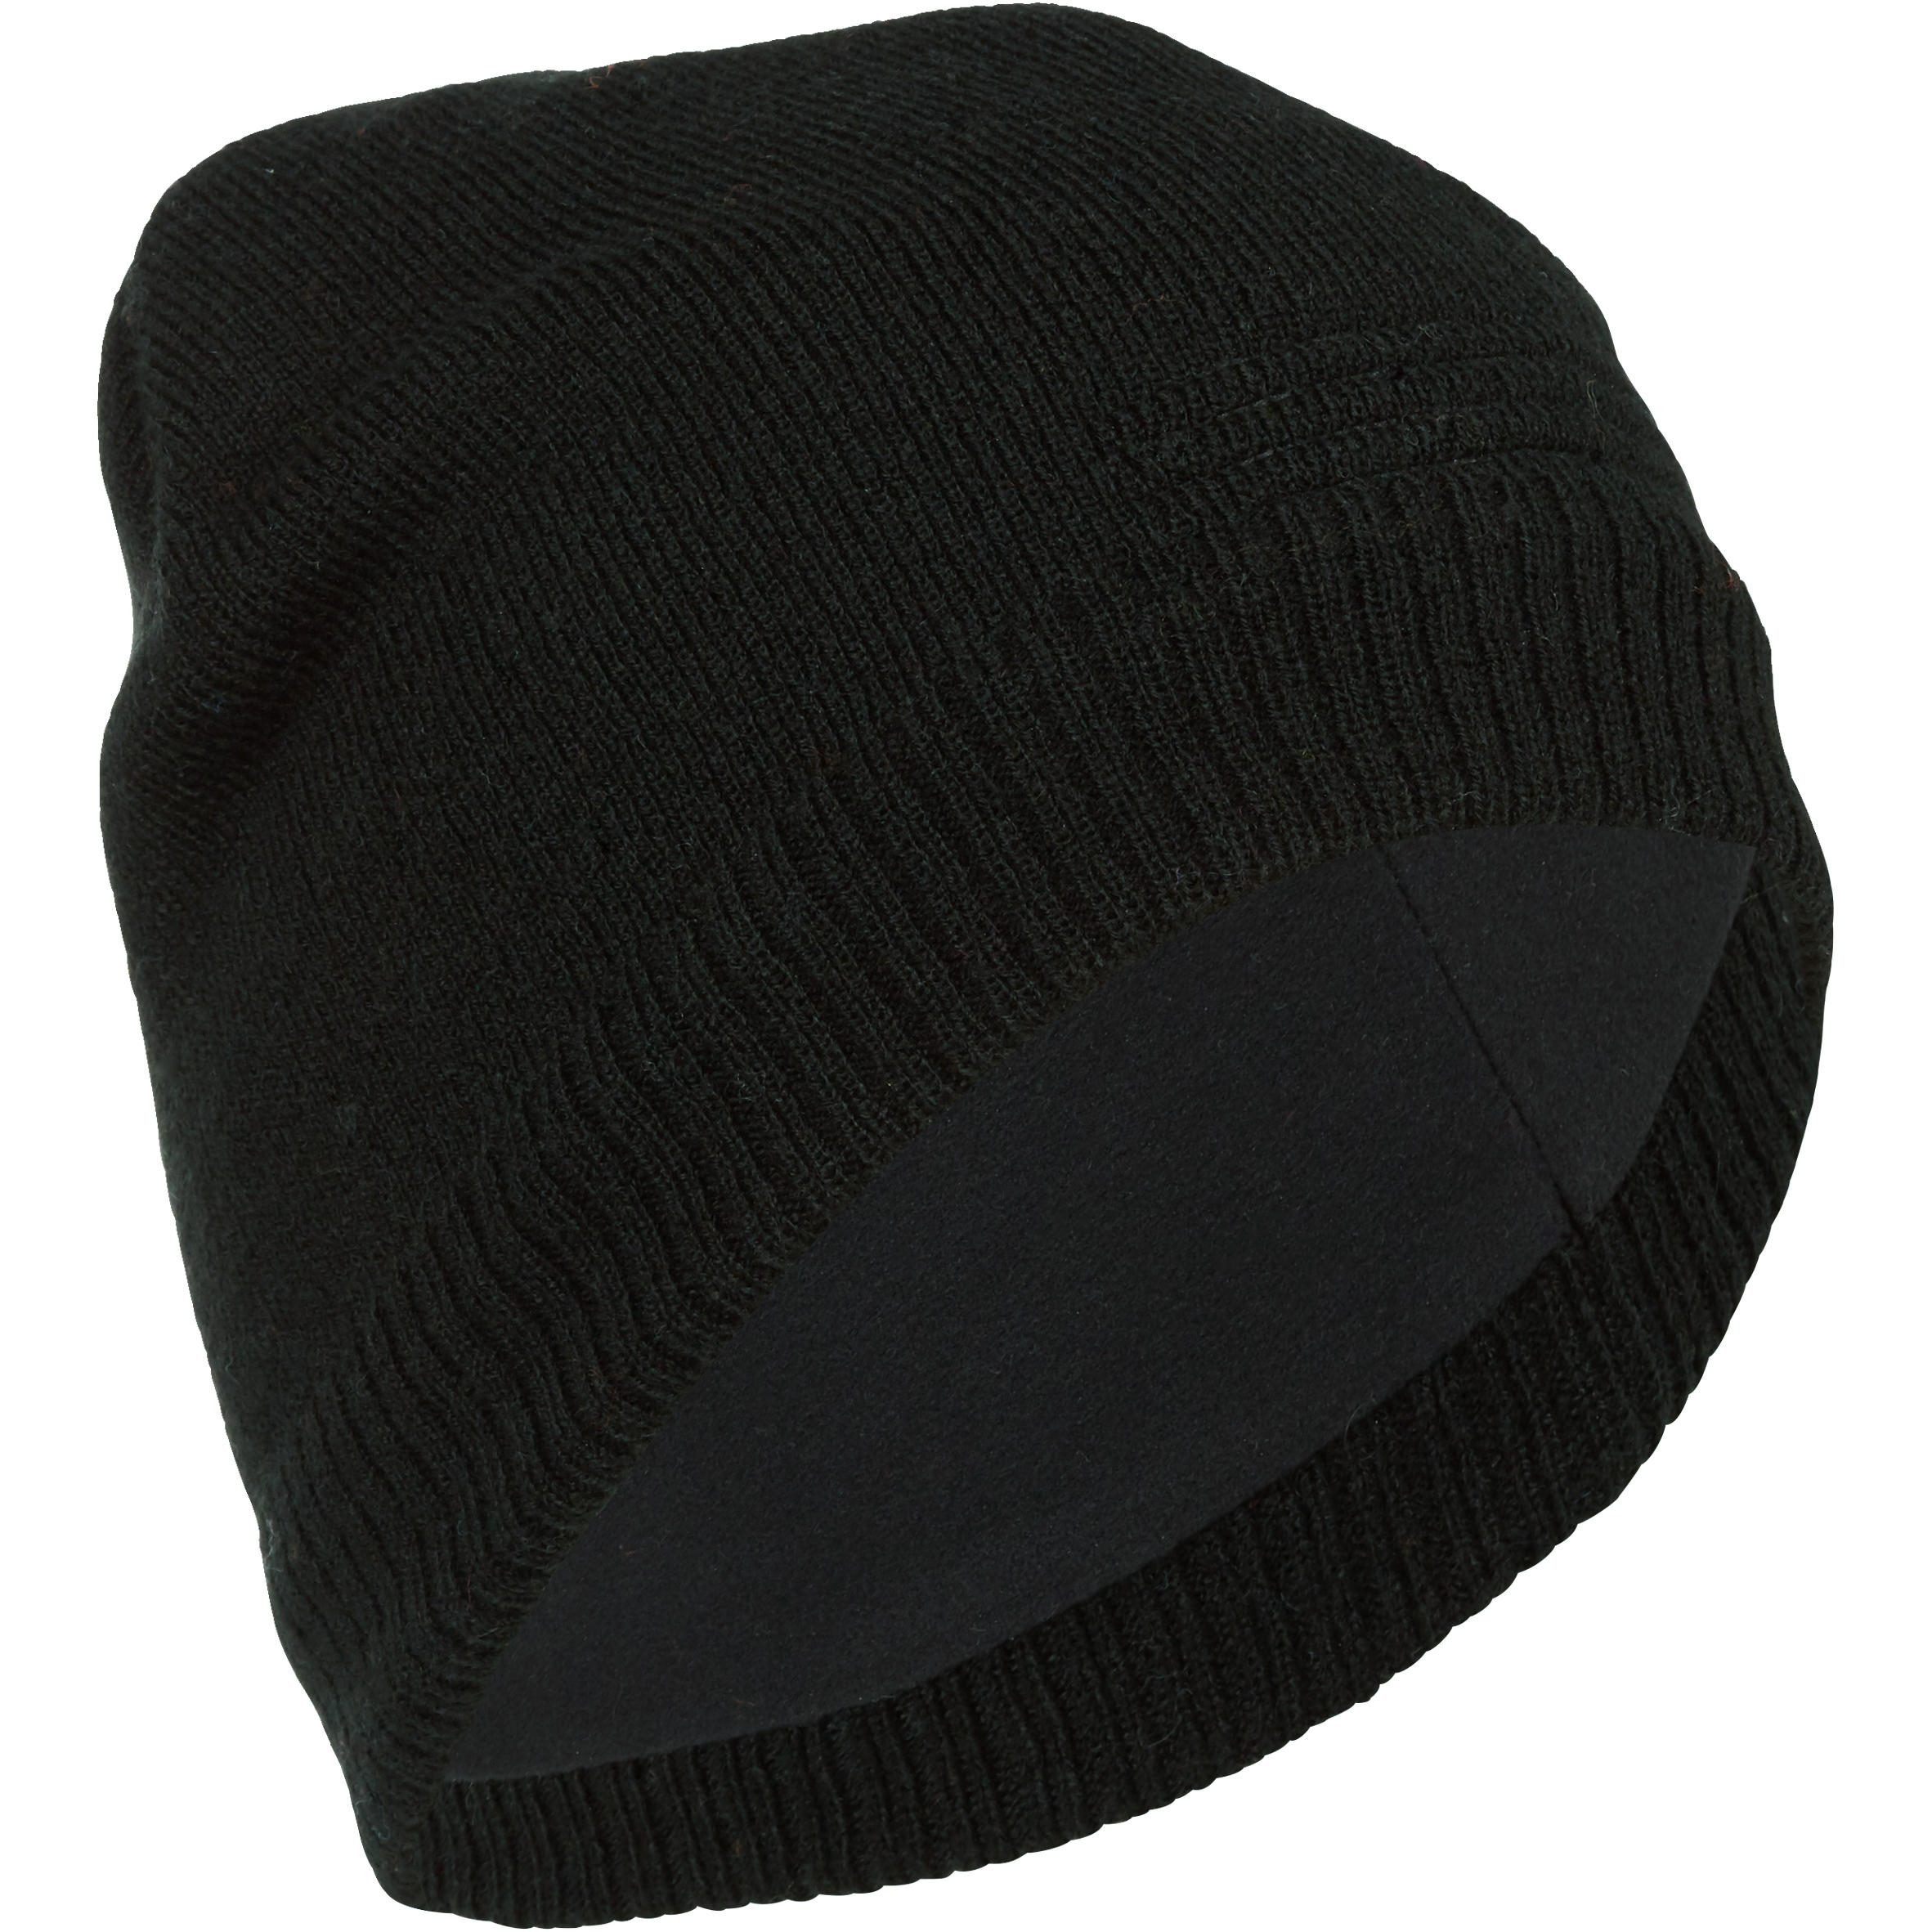 TUQUE DE SKI ADULTE PURE NOIR